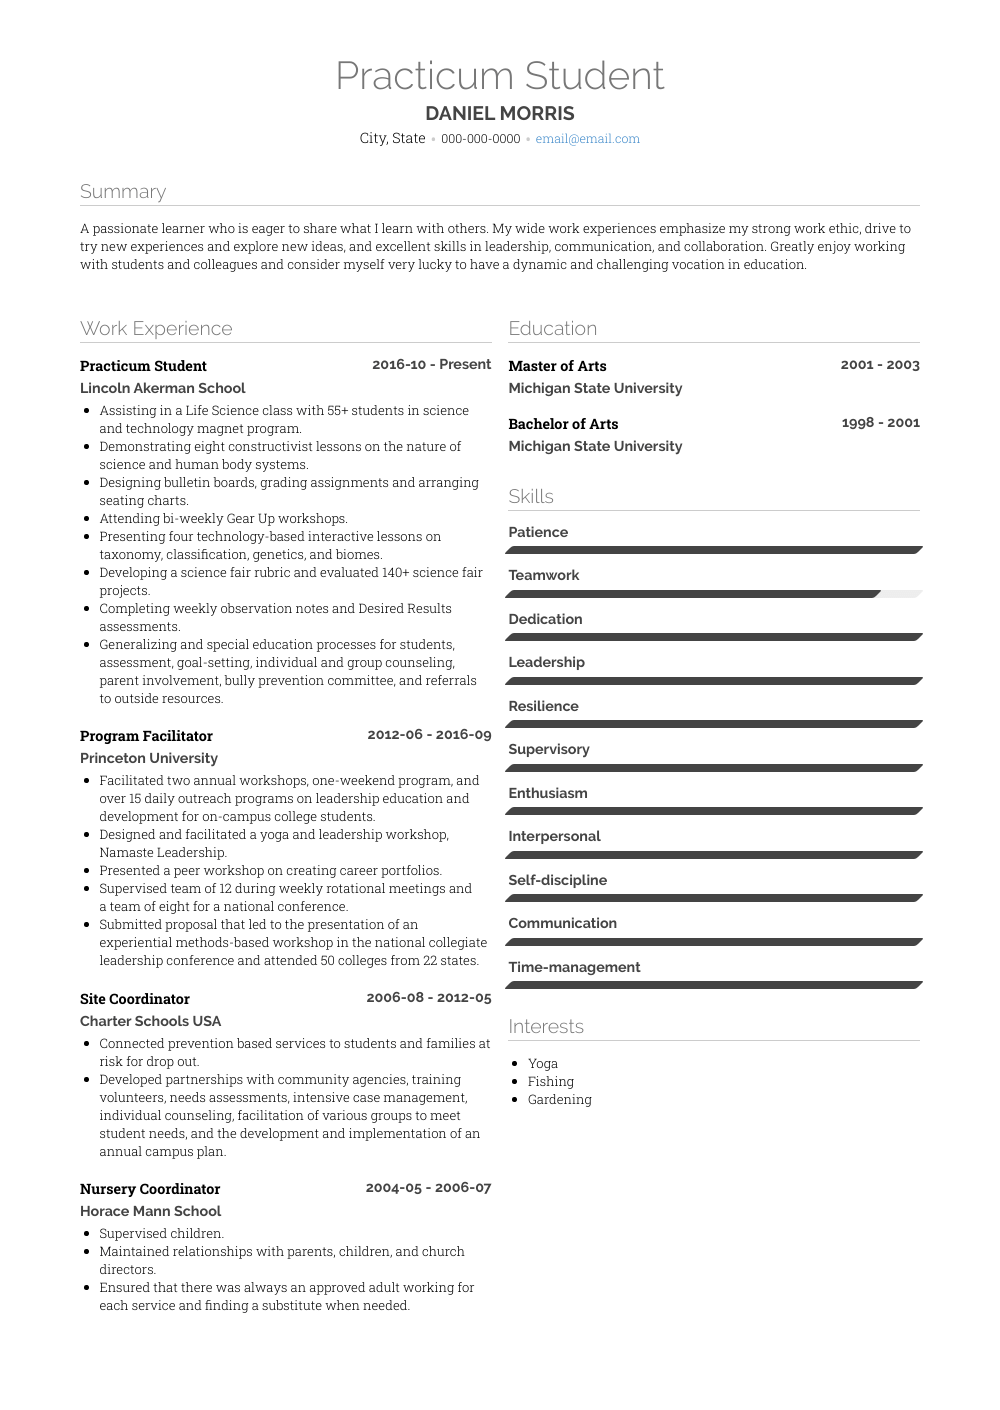 Students Resume Samples Practicum Student Resume Samples Templates Visualcv